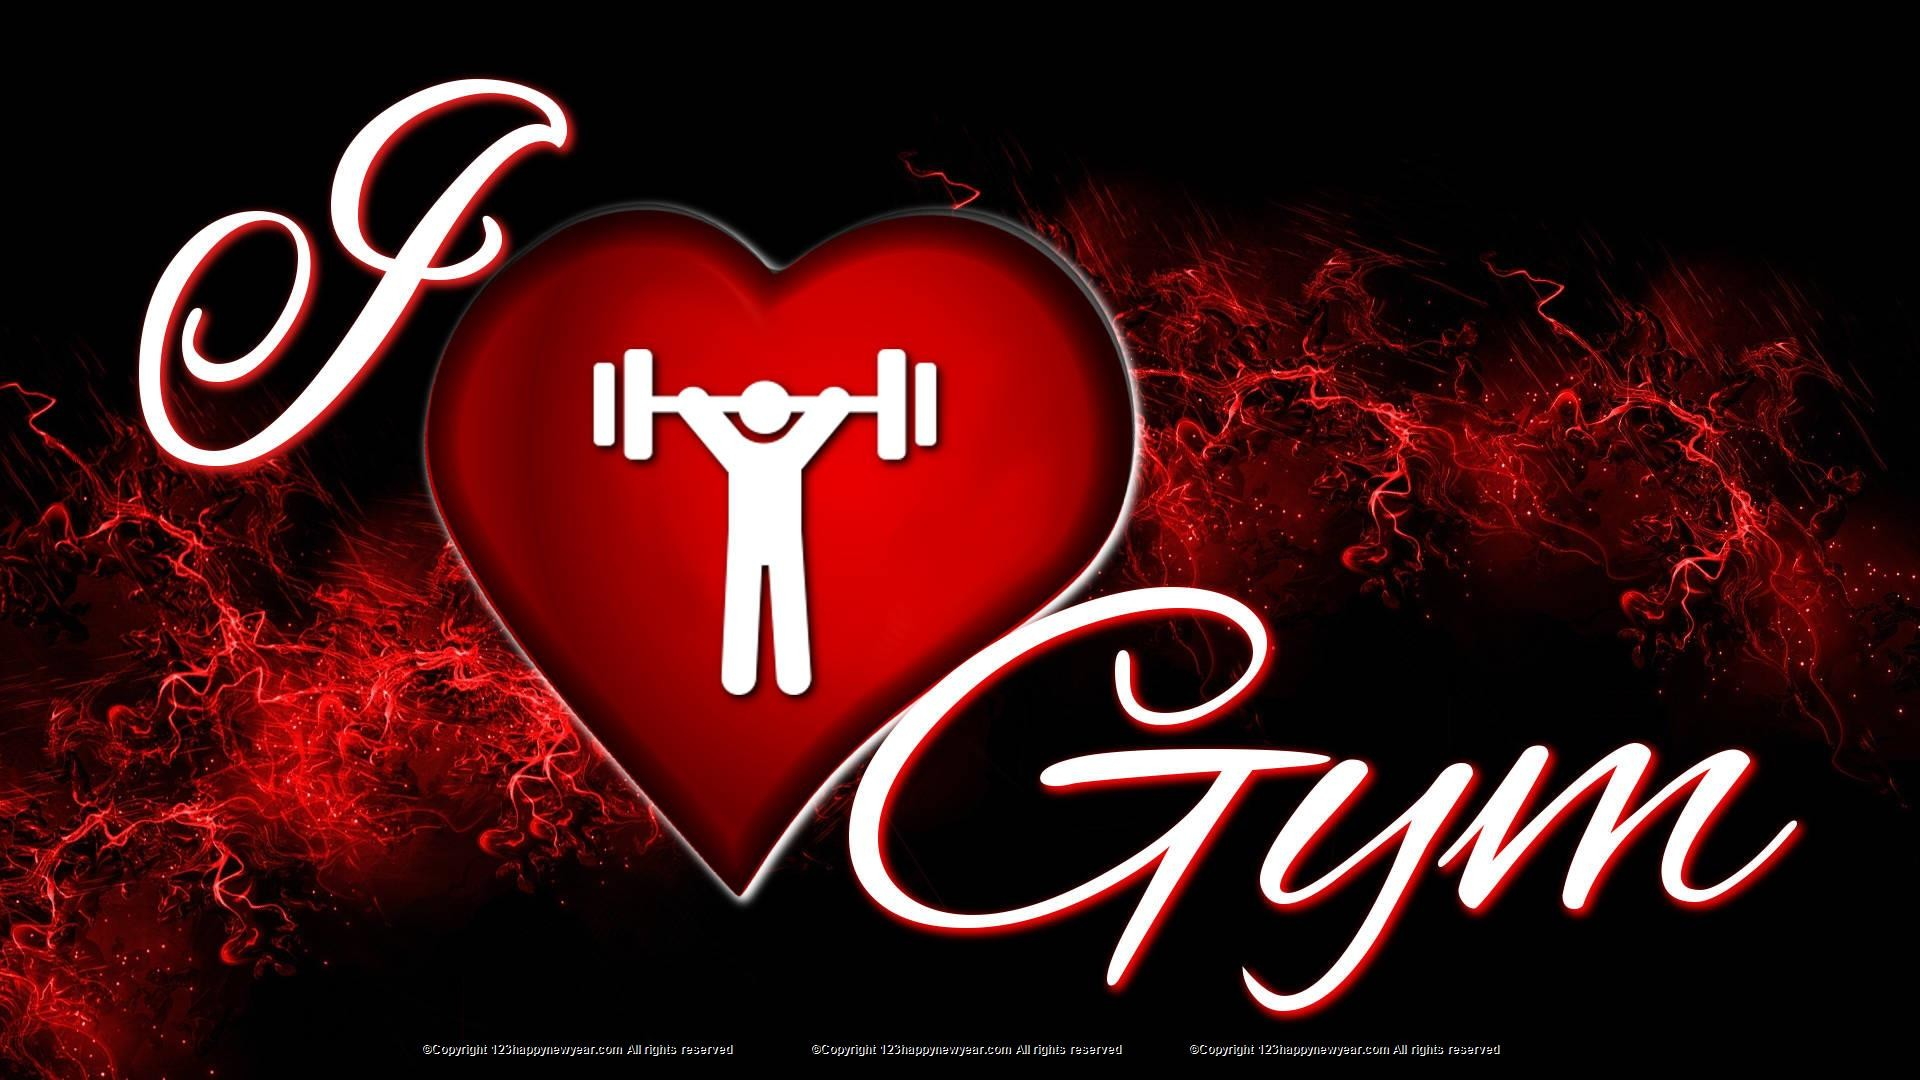 Gym Hd Wallpapers 1080p Download ✓ Fitrini's Wallpaper